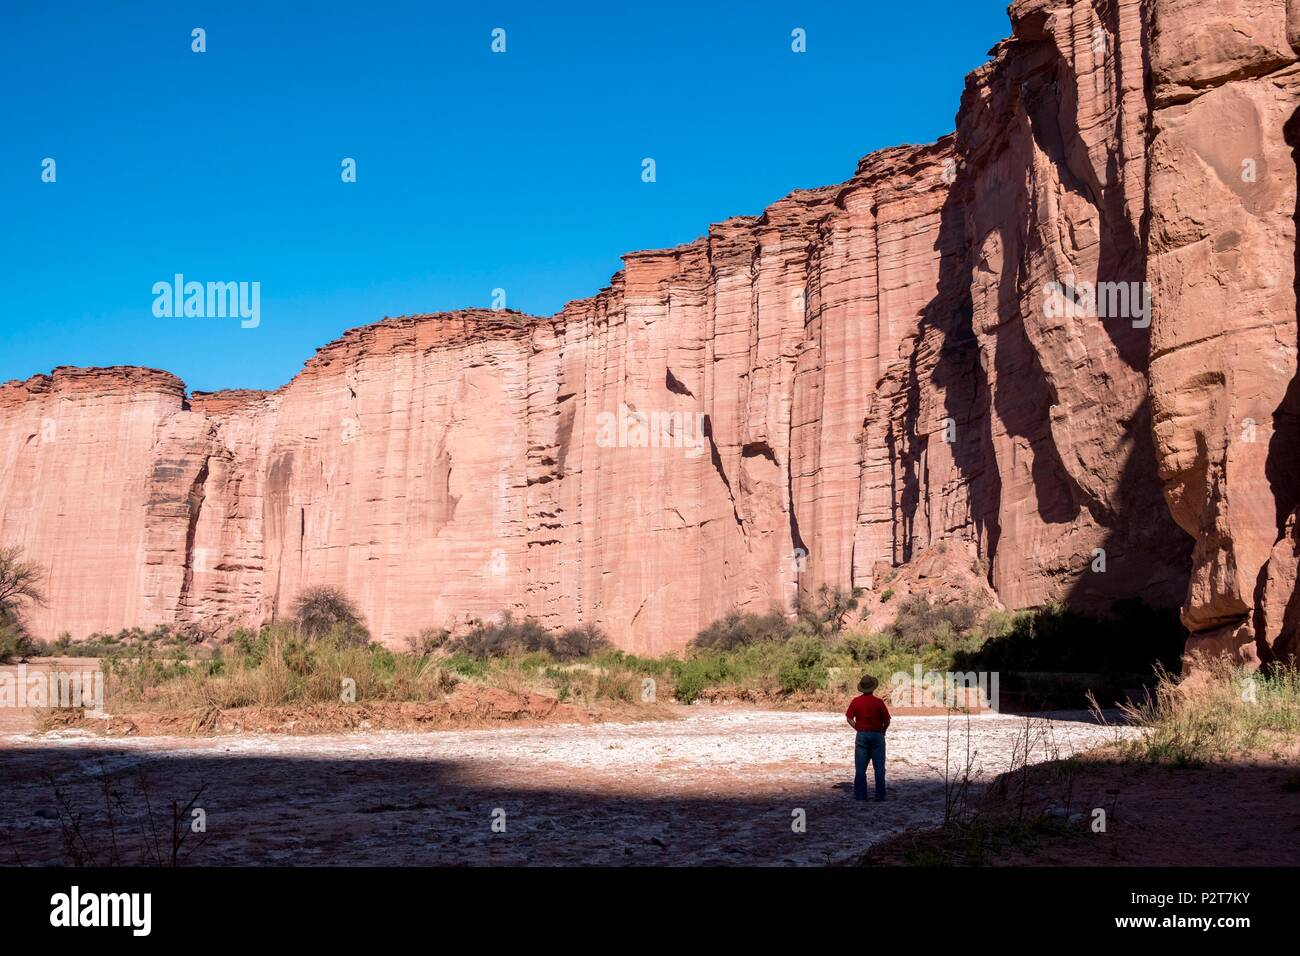 Argentina, La Rioja Province, near Villa Union, Talampaya national Park, Parque Nacional Talampaya listed as World Heritage by UNESCO, Talampaya canyon - Stock Image